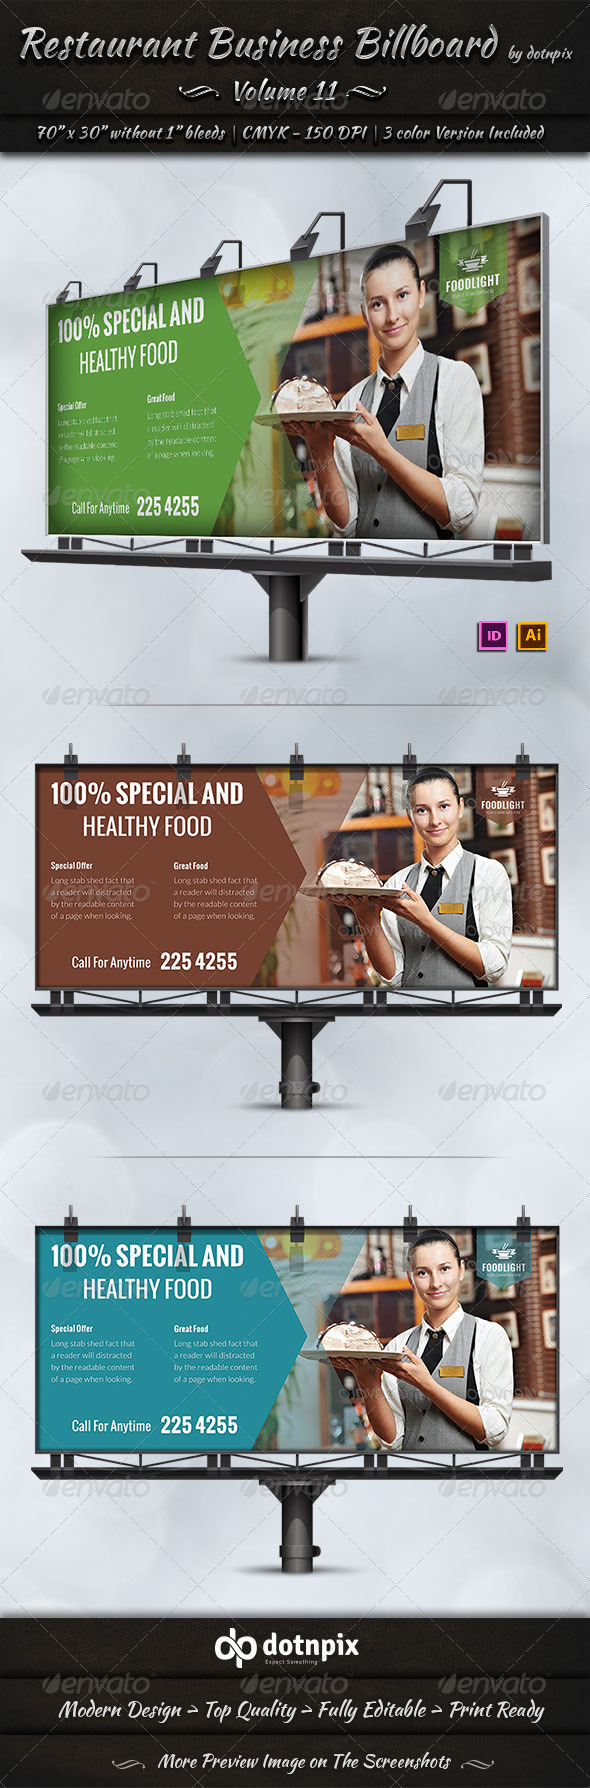 GraphicRiver Restaurant Business Billboard Volume 11 7870206